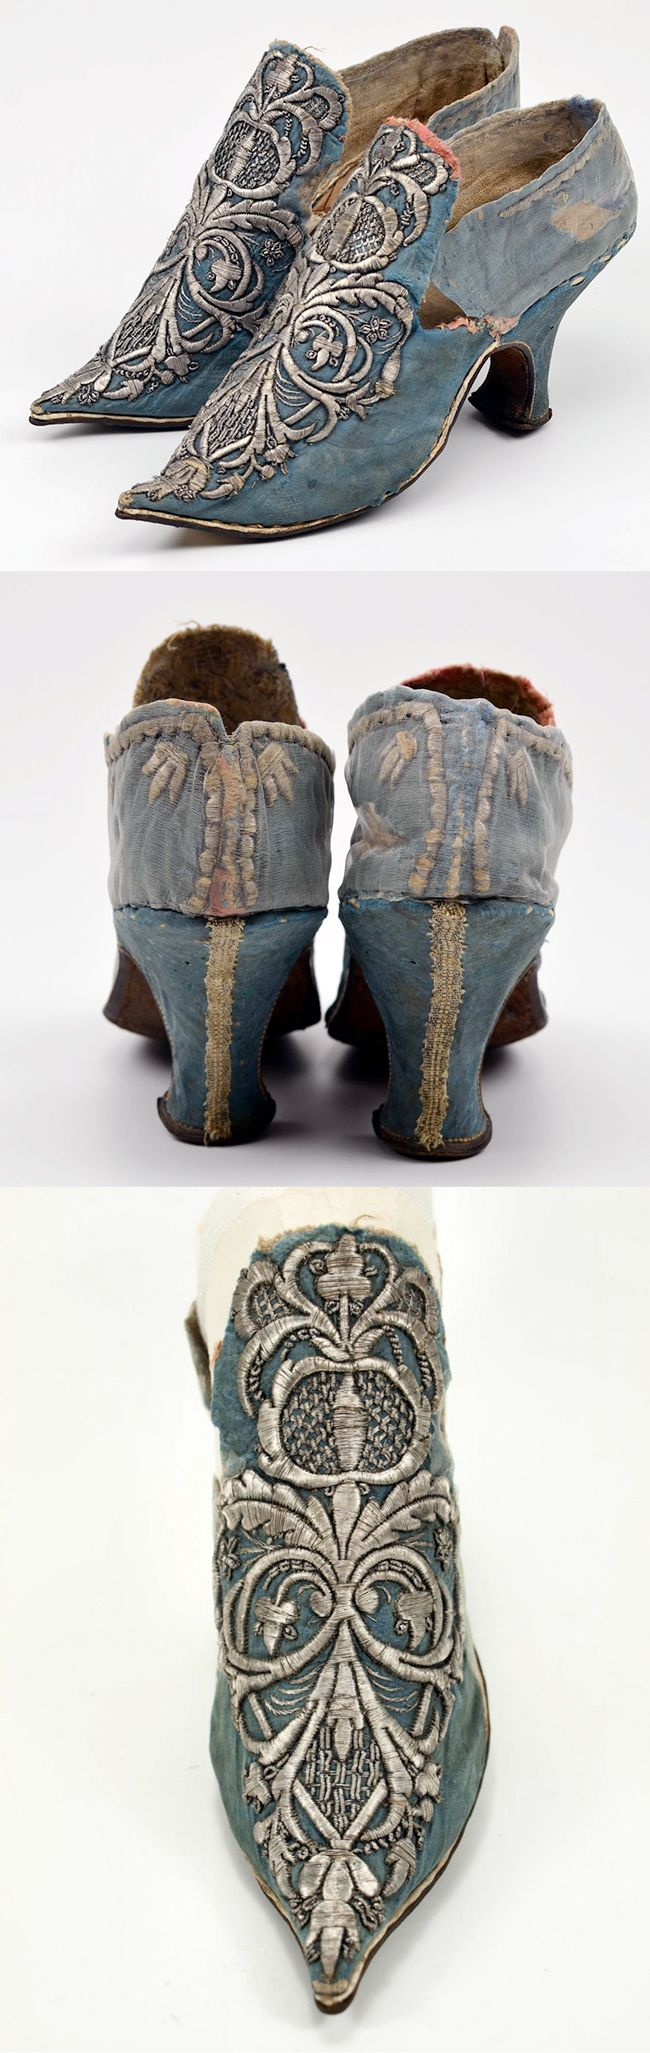 A pair of women's high heel shoes c.1700, Covered with floral blue silk damask . Embroidered in silver thread | Museum Weissenfels - Schloss Neu- Augustusburg ♡